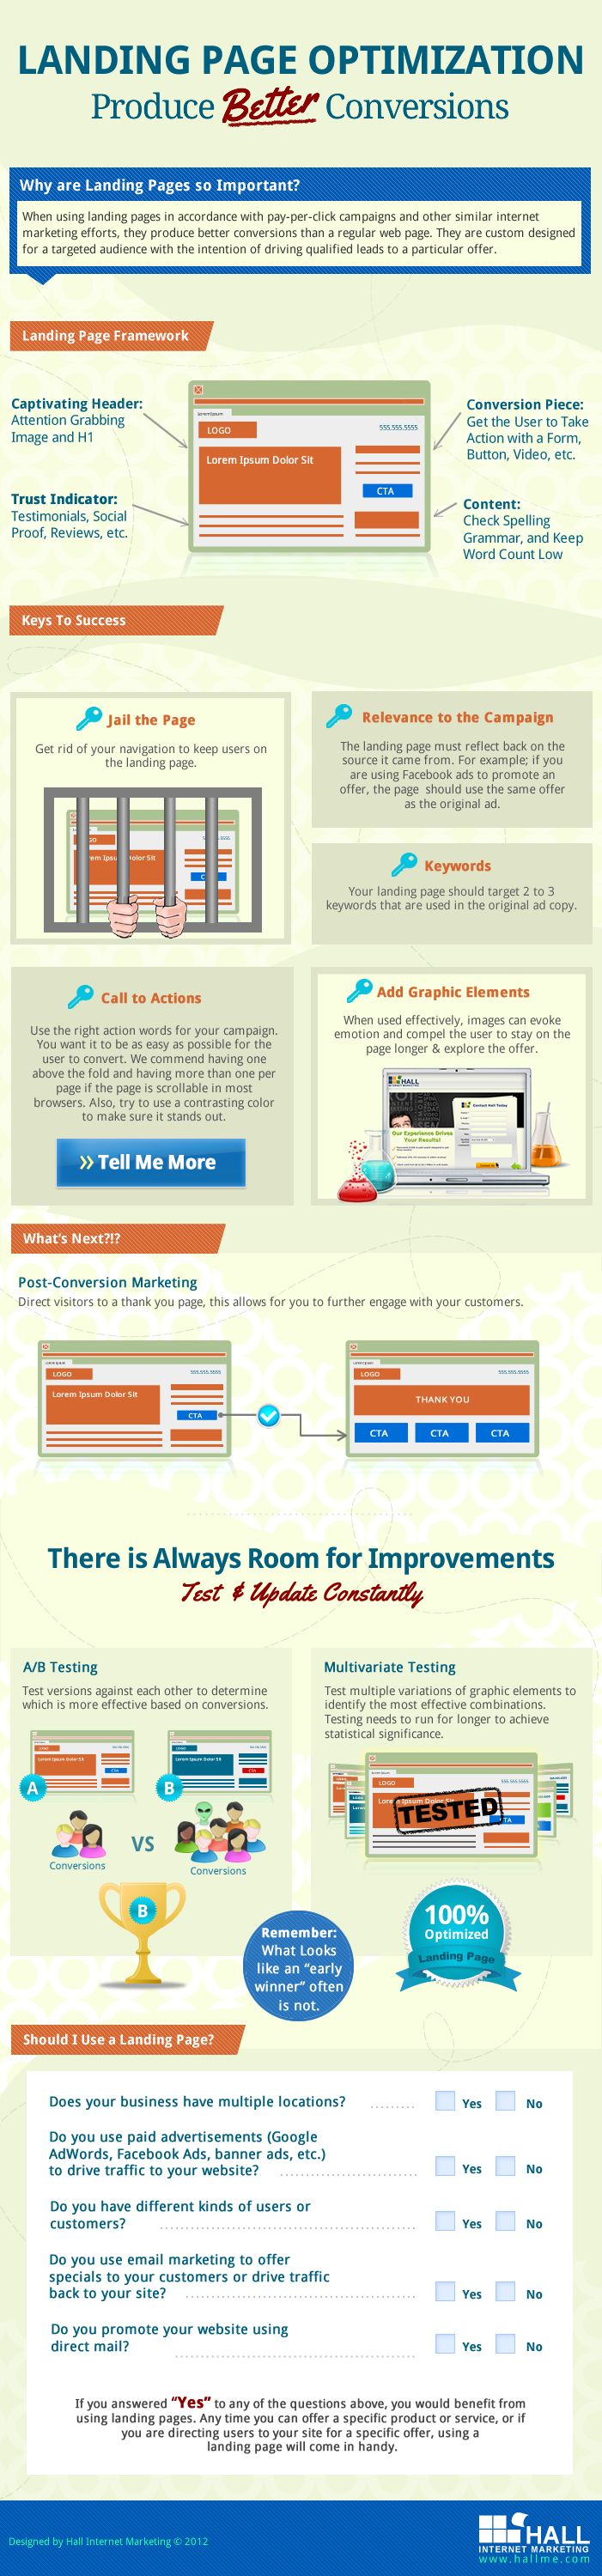 1 Landing Page for every 2-3 Keywords: Landing Page Optimization - Produce Better Conversions [INFOGRAPHIC]